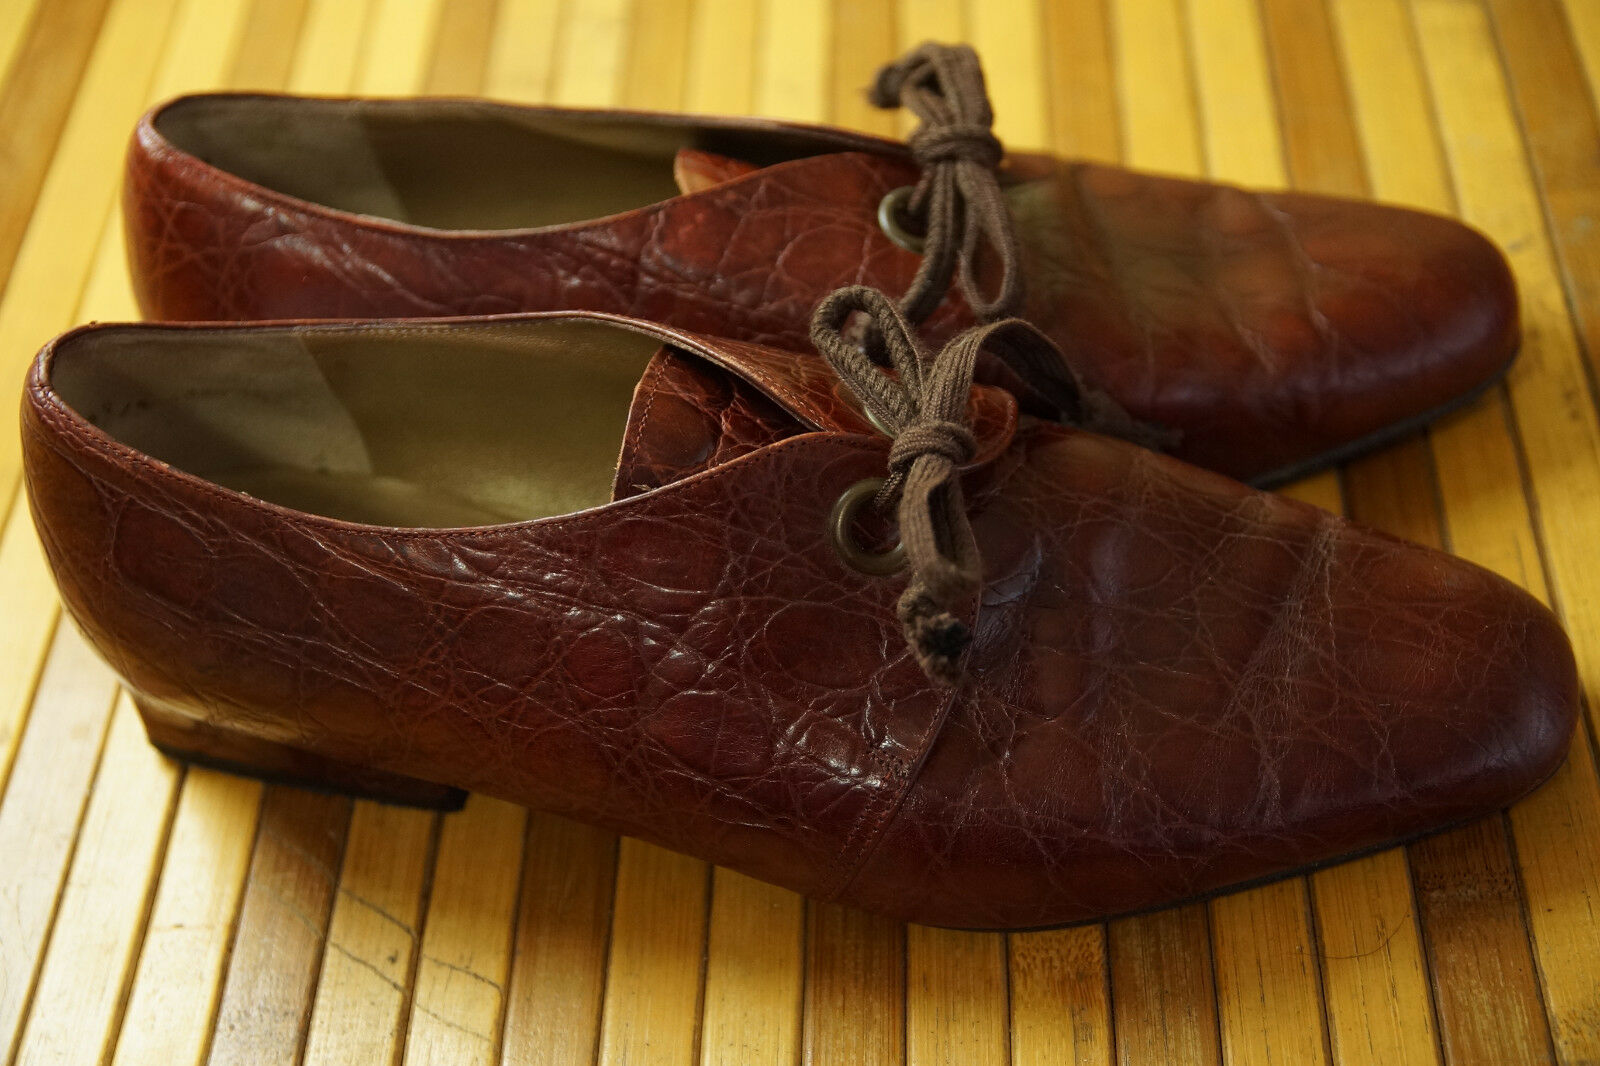 CASTELLINI Vintage chaussures 9 5 8  Insole UK4 1-Eye Texturouge Leather Square Heel